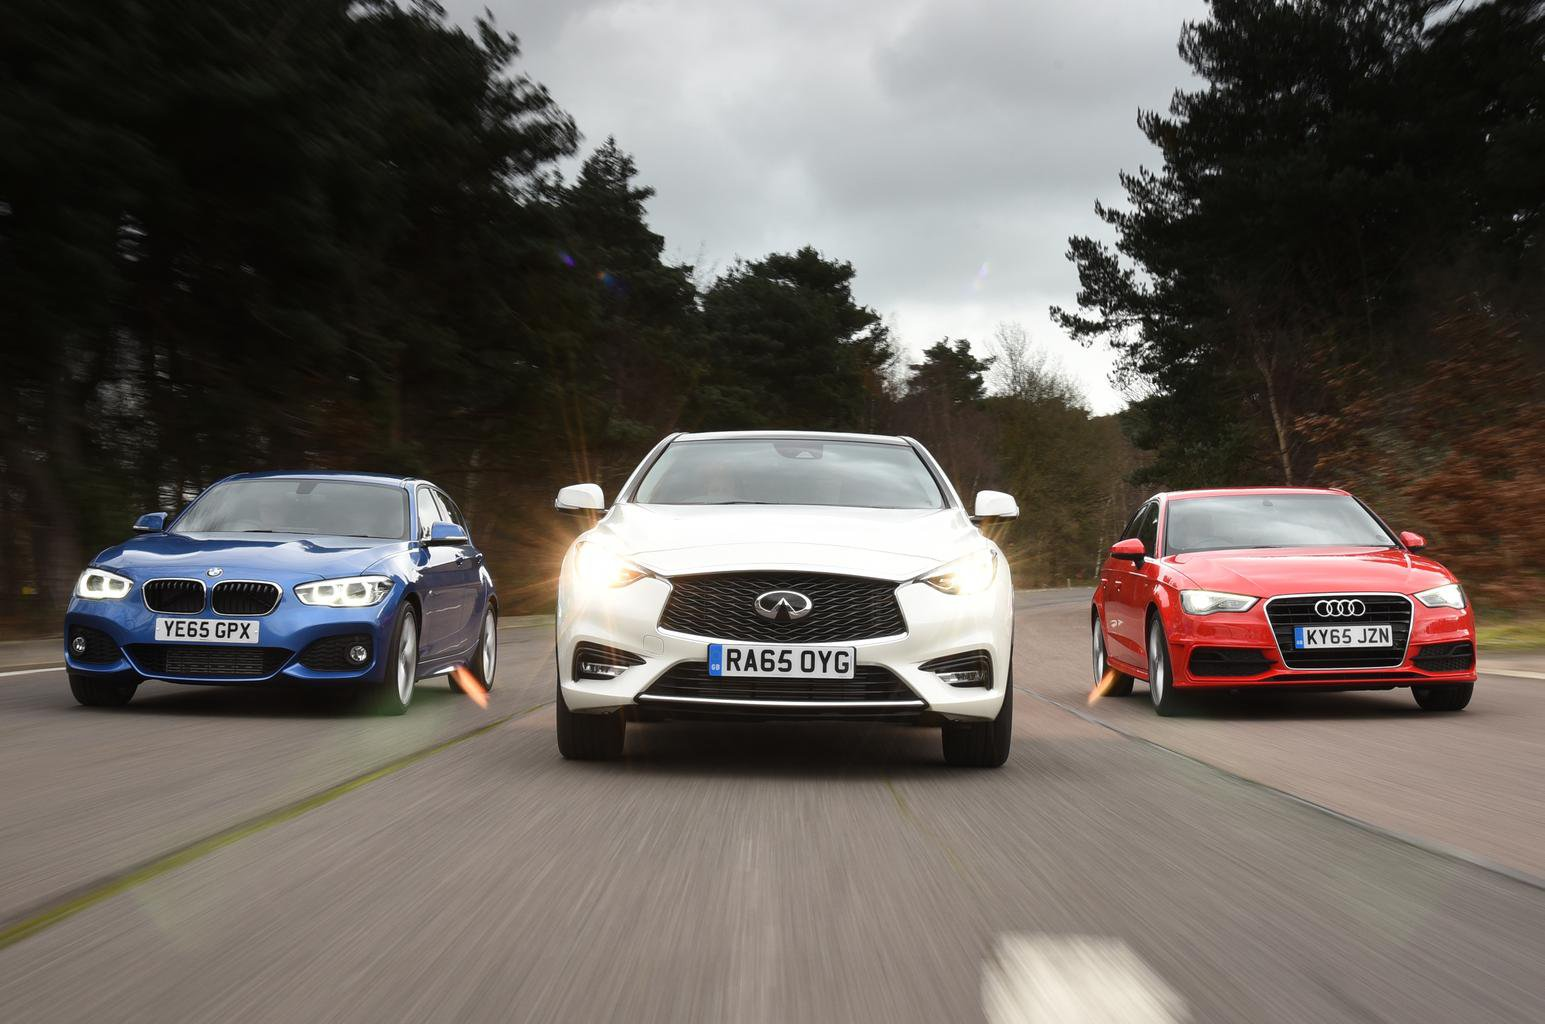 Audi A3 Sportback vs BMW 1 Series vs Infiniti Q30: Verdict